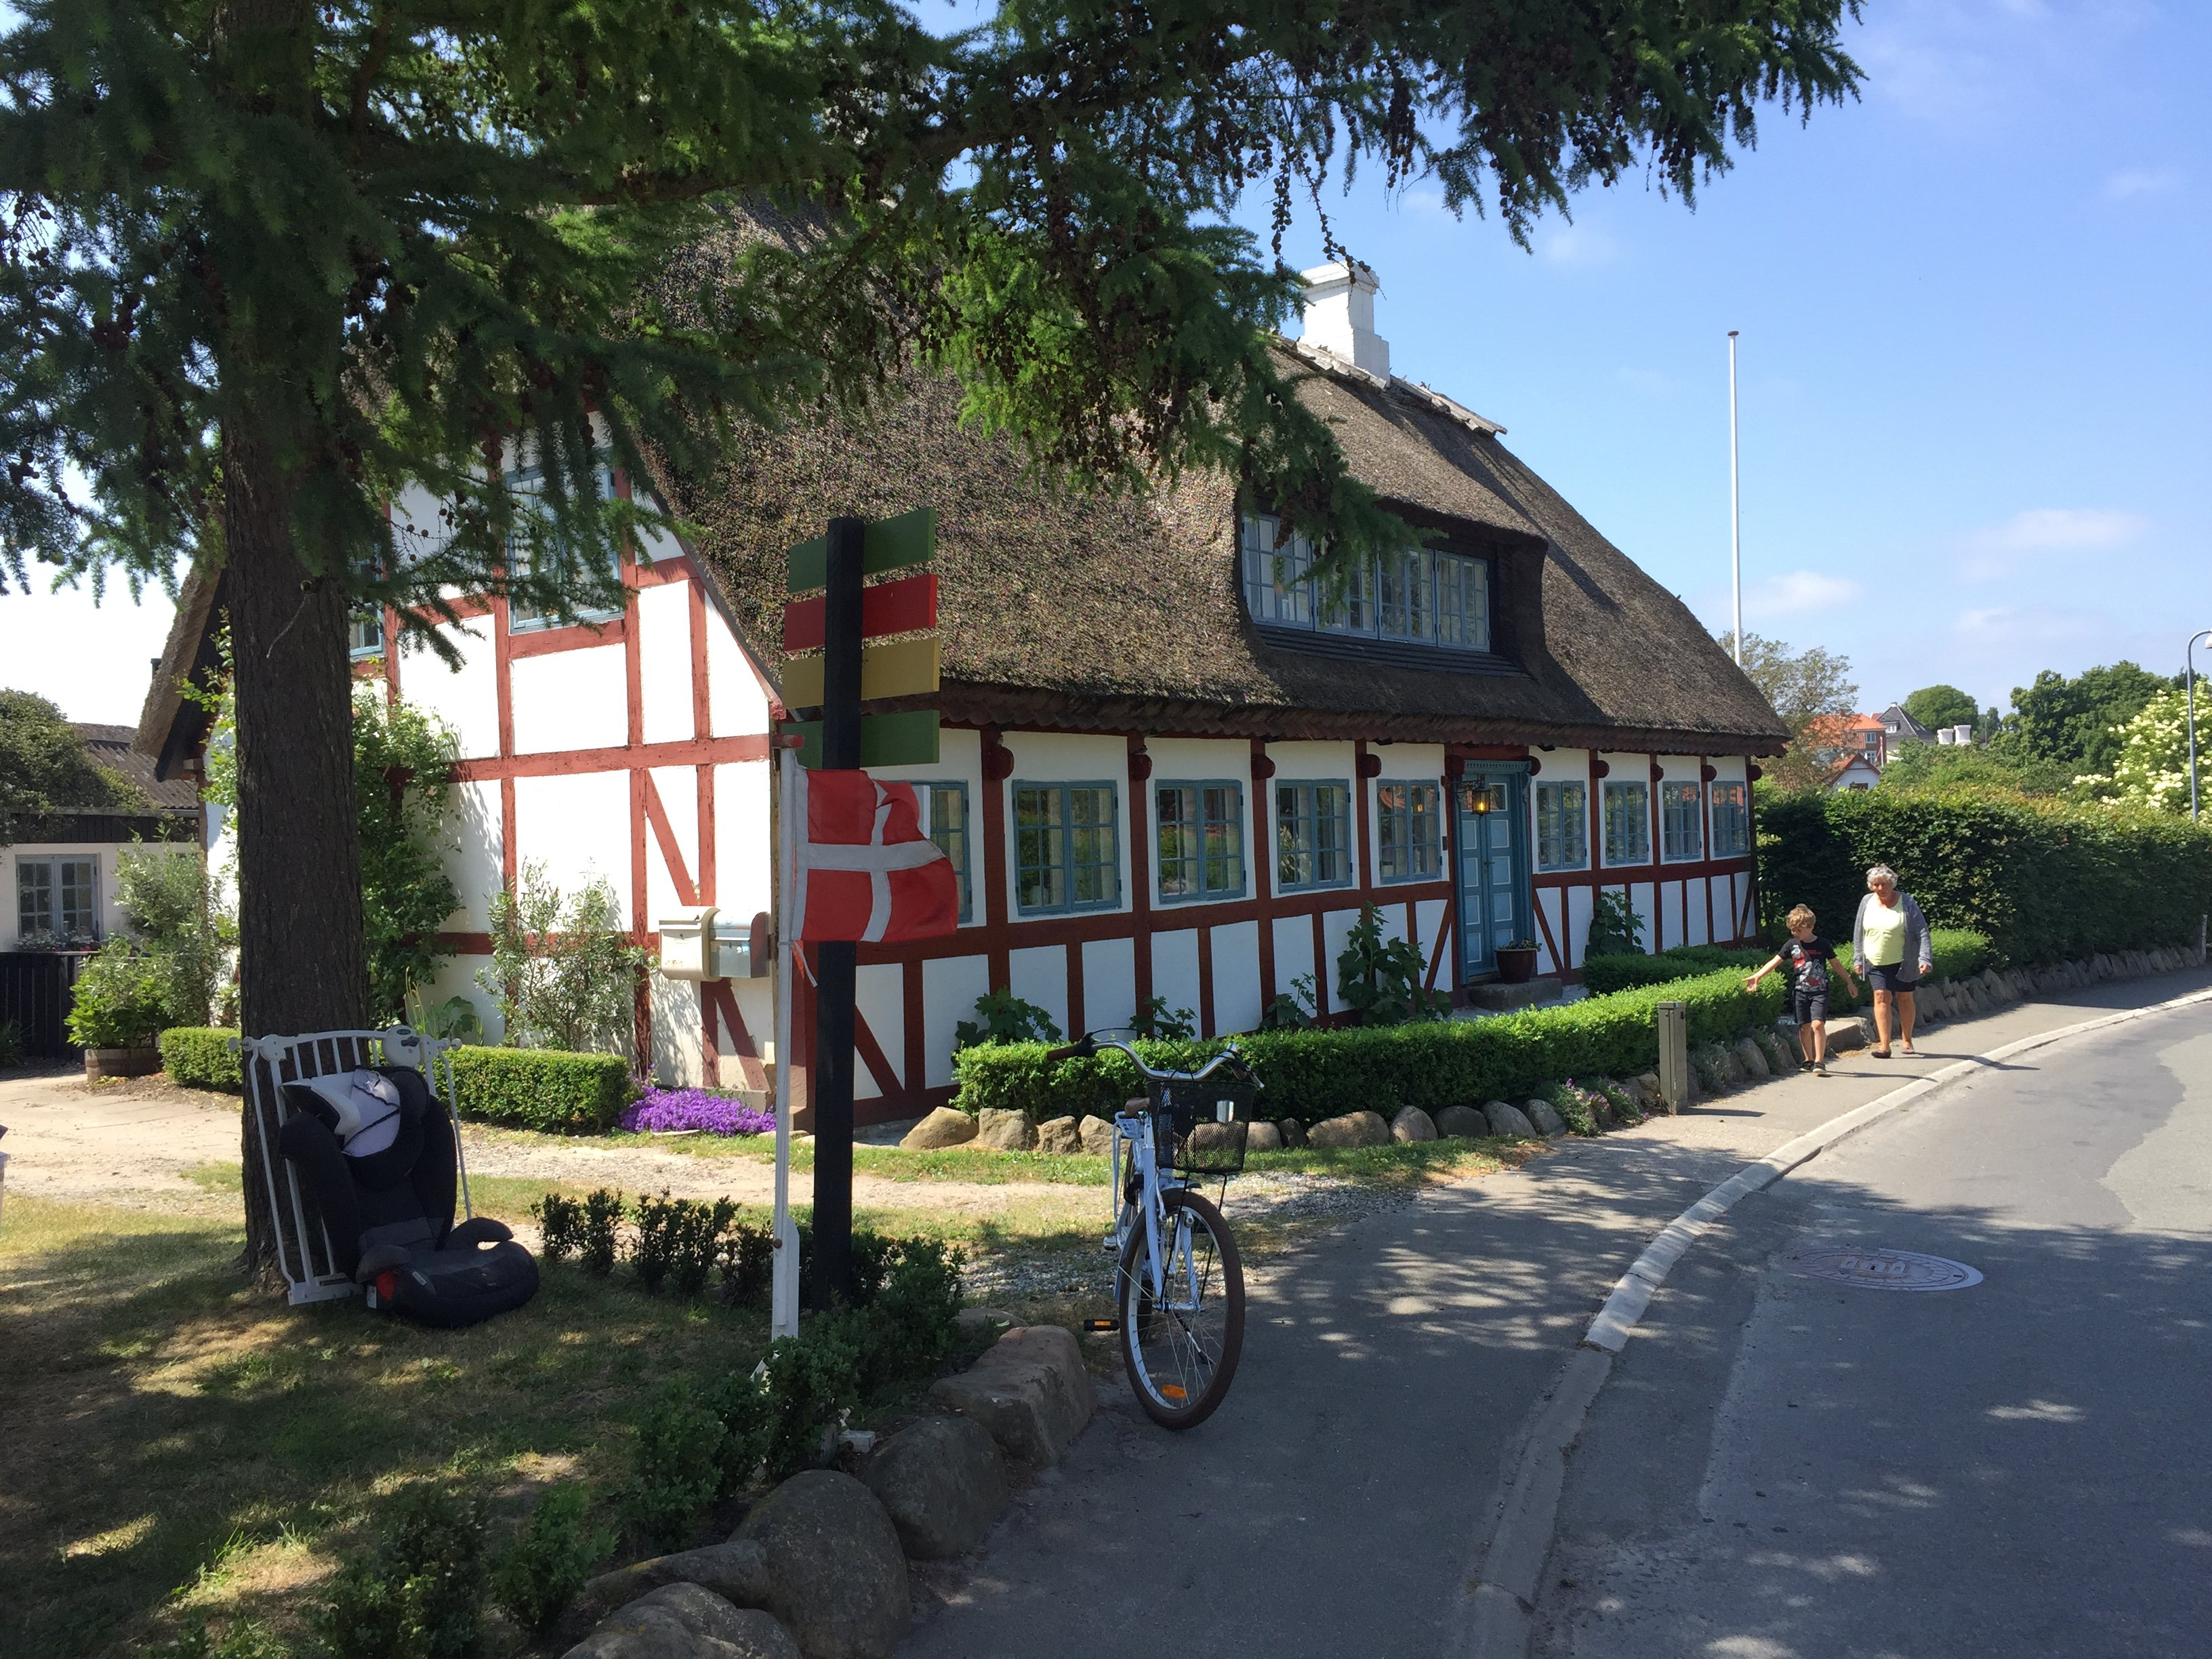 Cycling holiday in Denmark